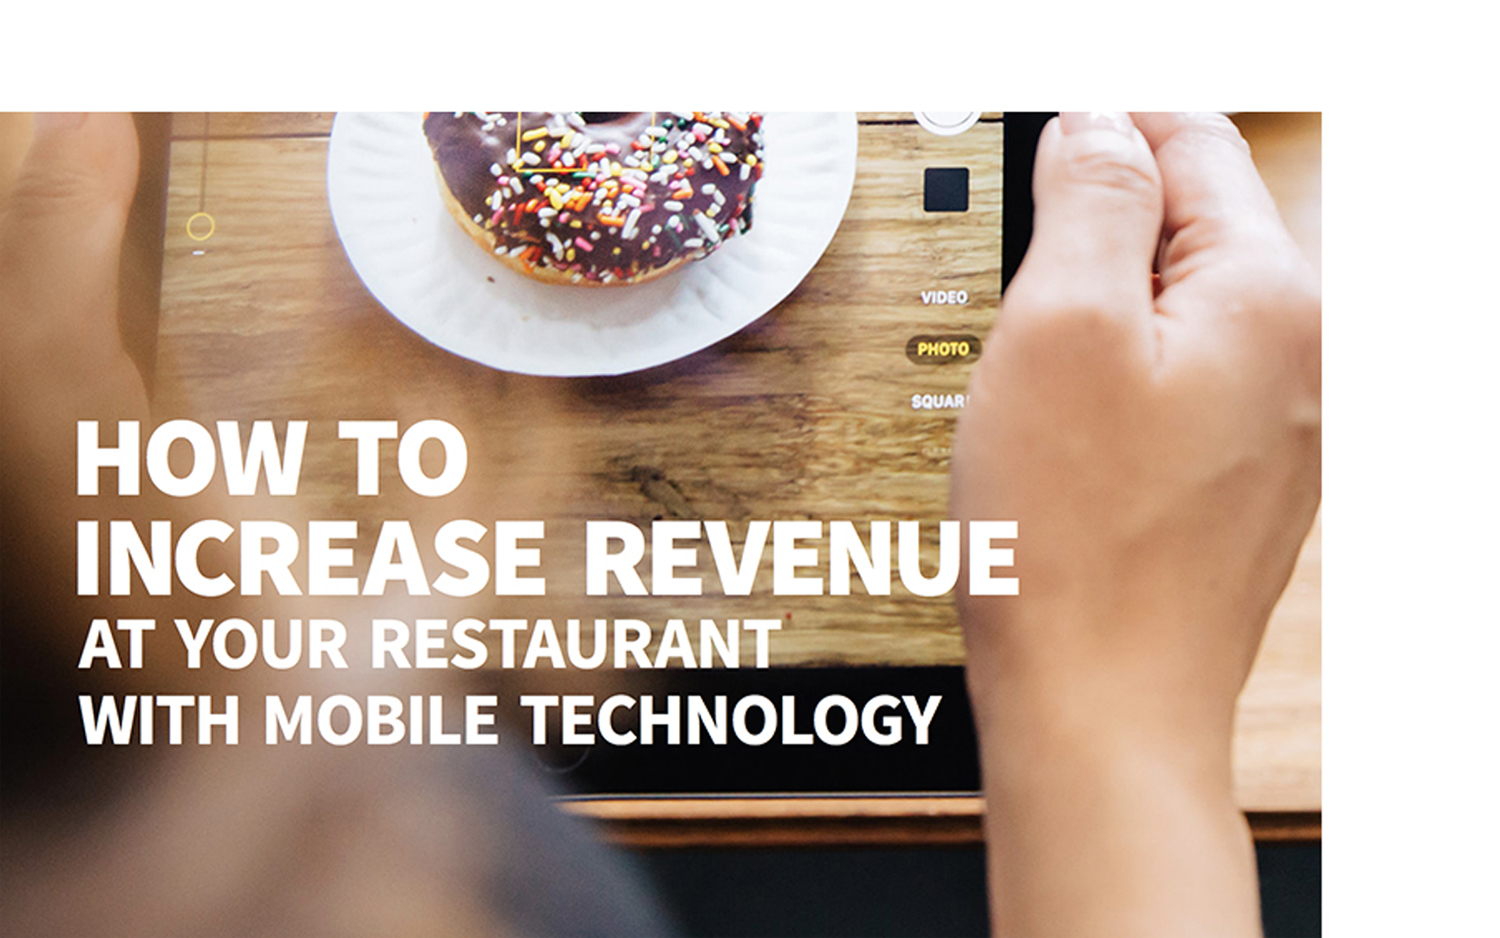 RESTAURANT HOSPITALITY - HOW TO INCREASE REVENUE AT YOUR RESTAURANT WITH MOBILE TECHNOLOGY